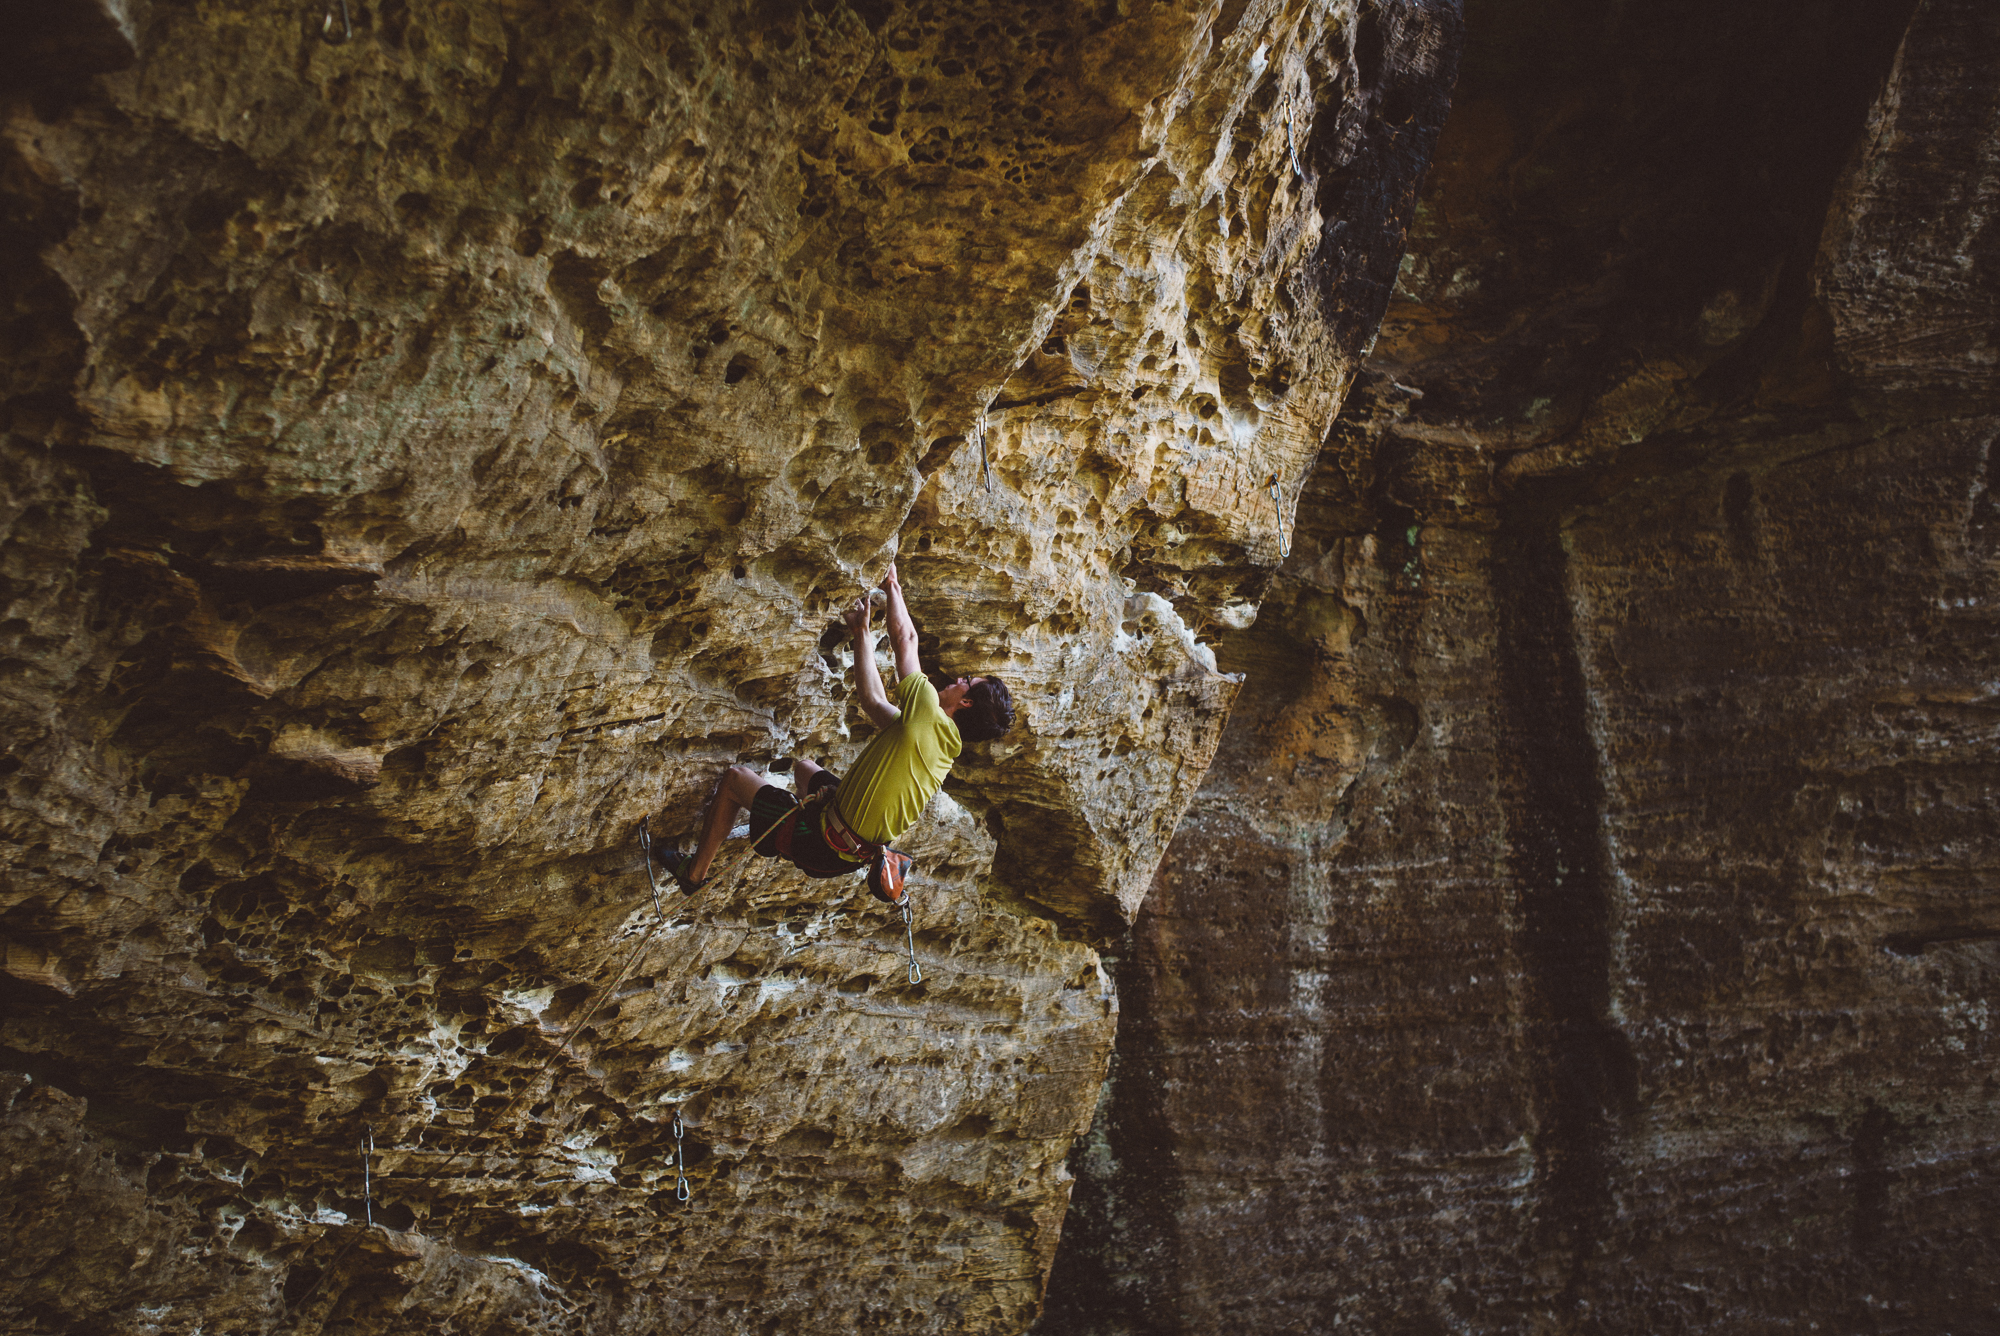 Dru Mack, sponsored by Canopy Crew, Rockhouse, and Evolve warming up on Beta-Vul Pipeline (5.12a) before heading over to Southern Smoke.